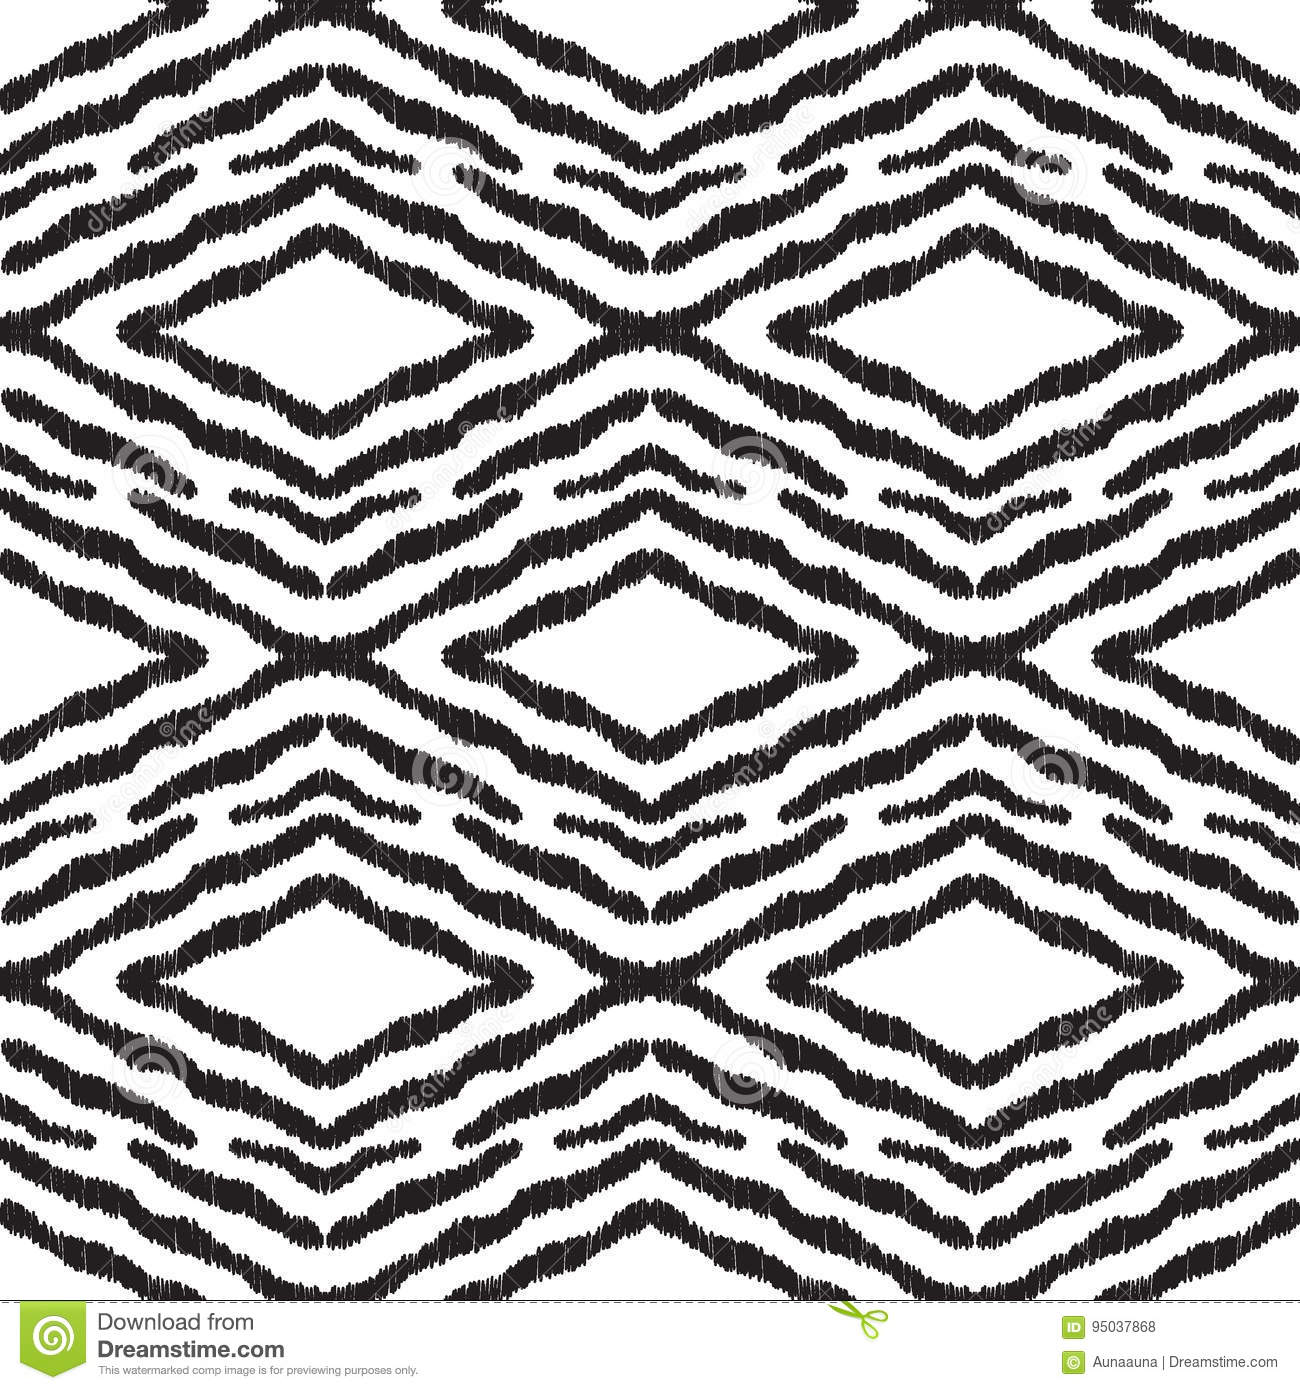 Seamless Pattern In Aztec Style Black And White Print For Textile Wallpaper Card Or Wrapping Paper